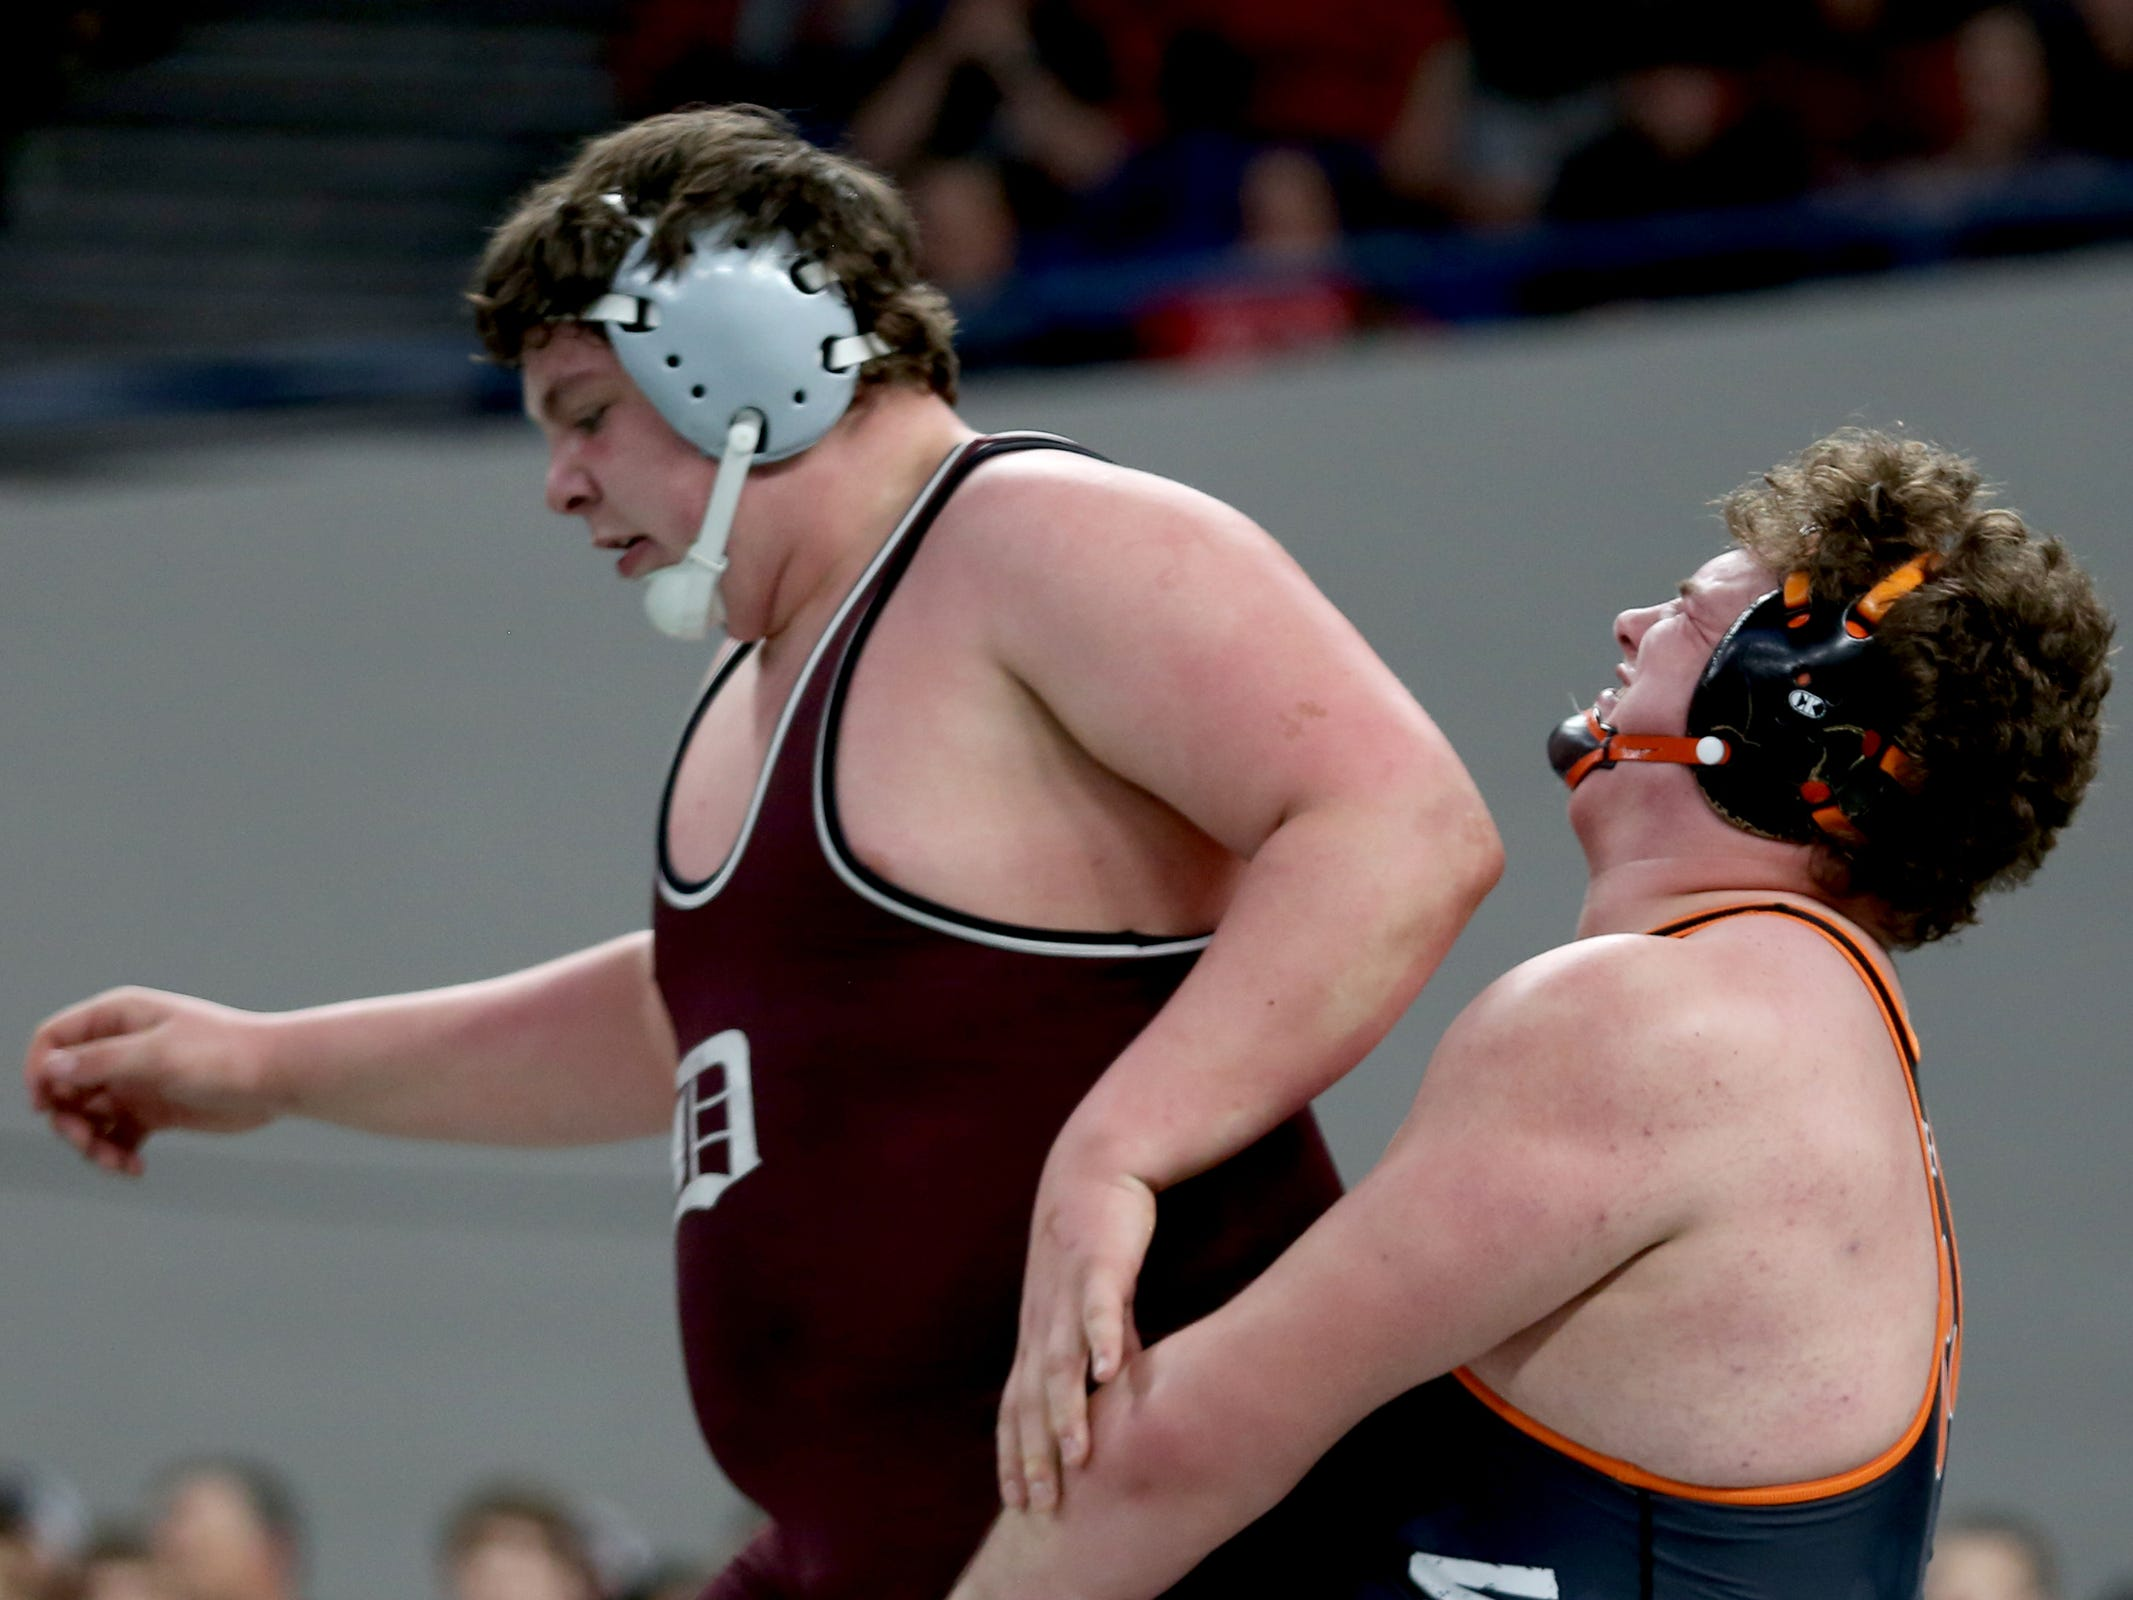 Dayton's Blake Larsen, left, and Willamina-Falls City's Jordan Mode compete in the 285 pound weight class in the OSAA Class 3A wrestling final at the Memorial Coliseum in Portland on Saturday, Feb. 23, 2019. Larsen won the championship.